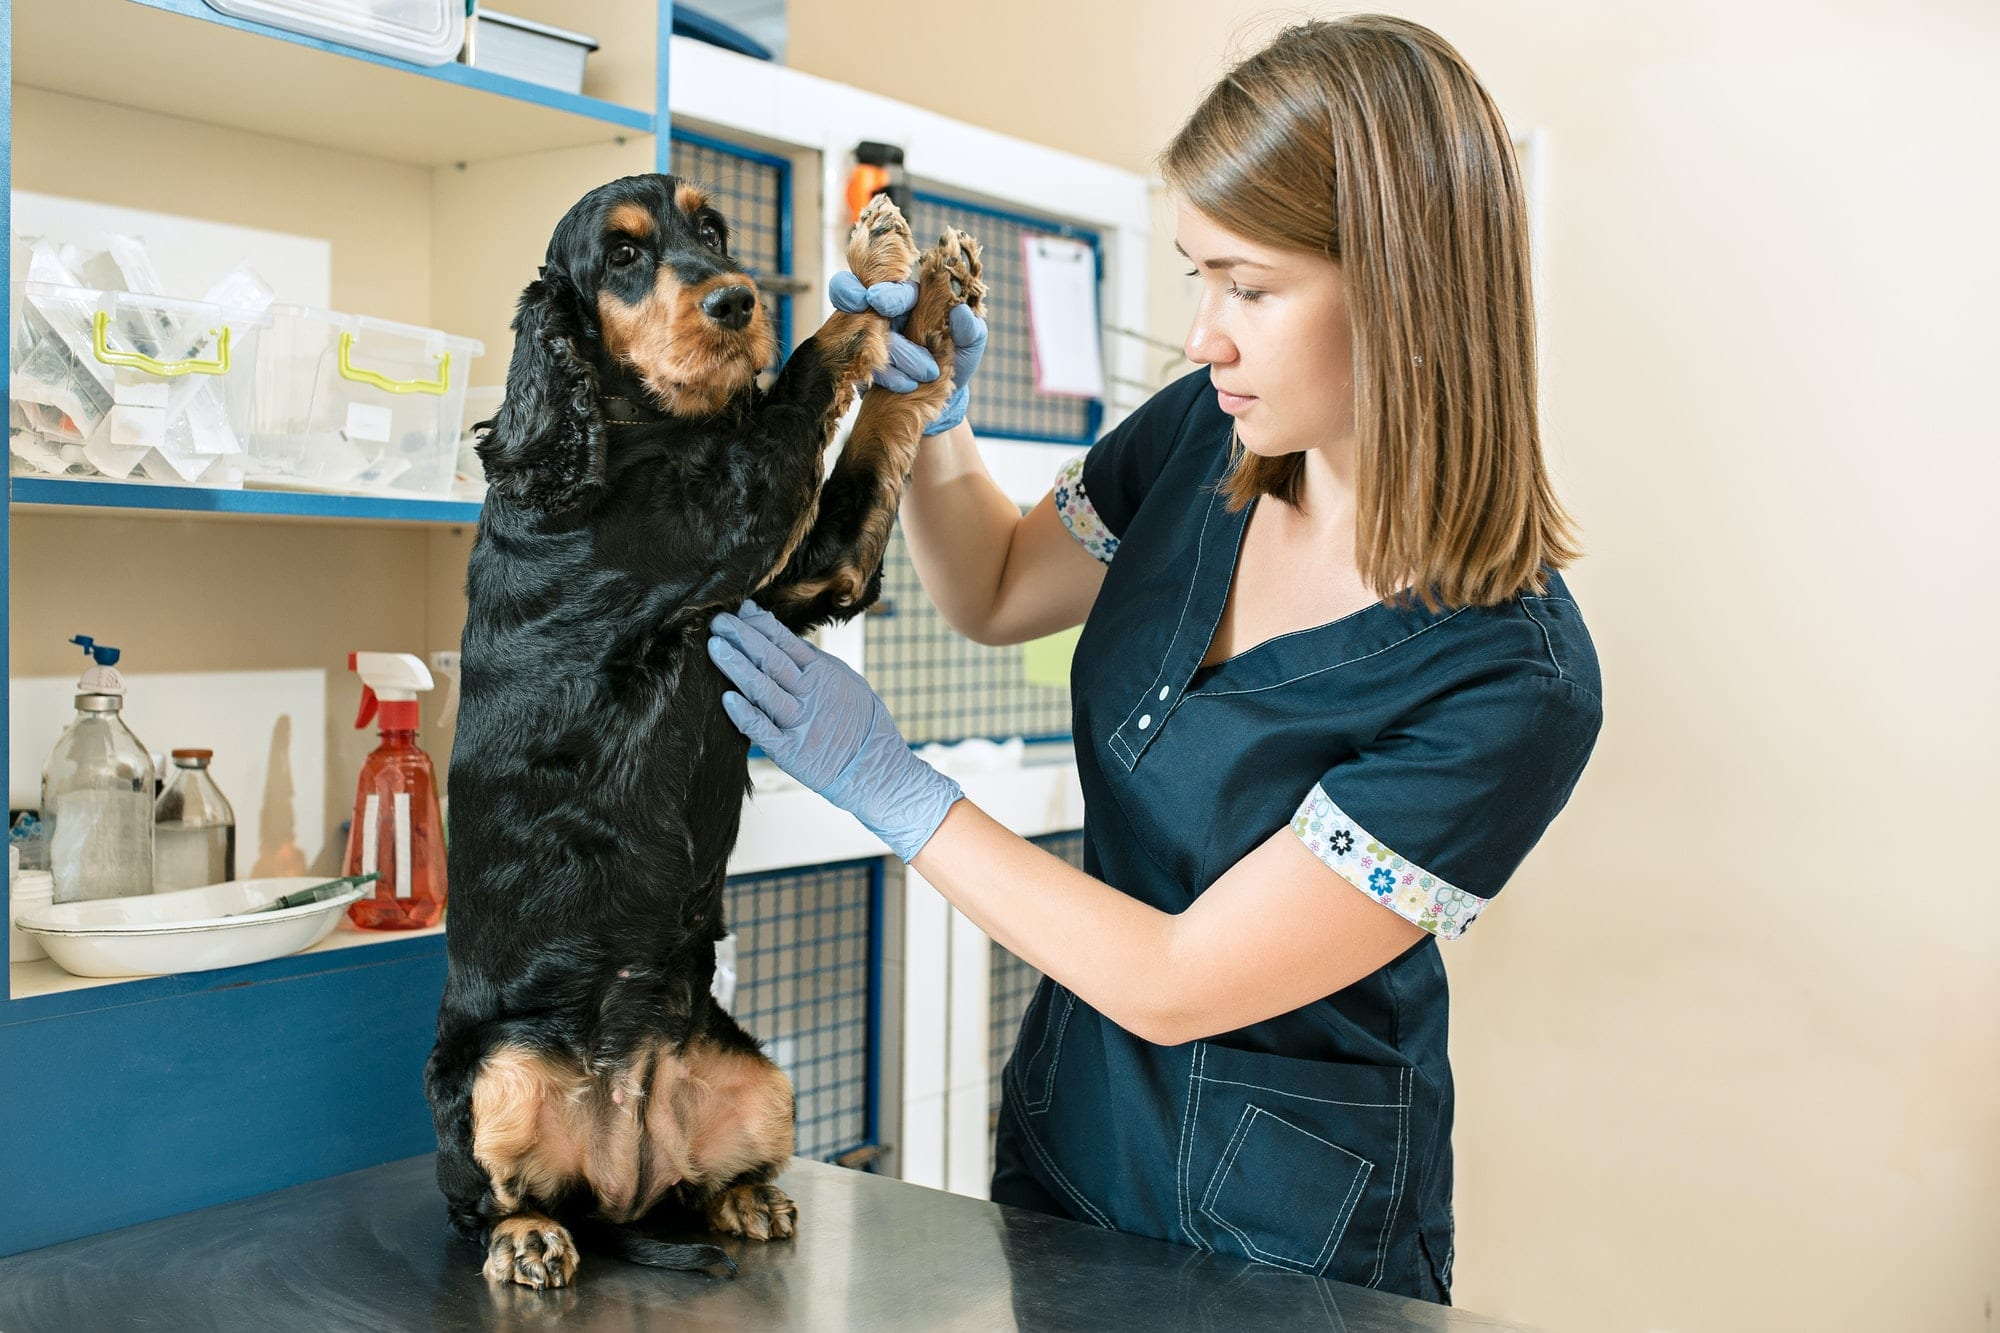 5 pet safety tips